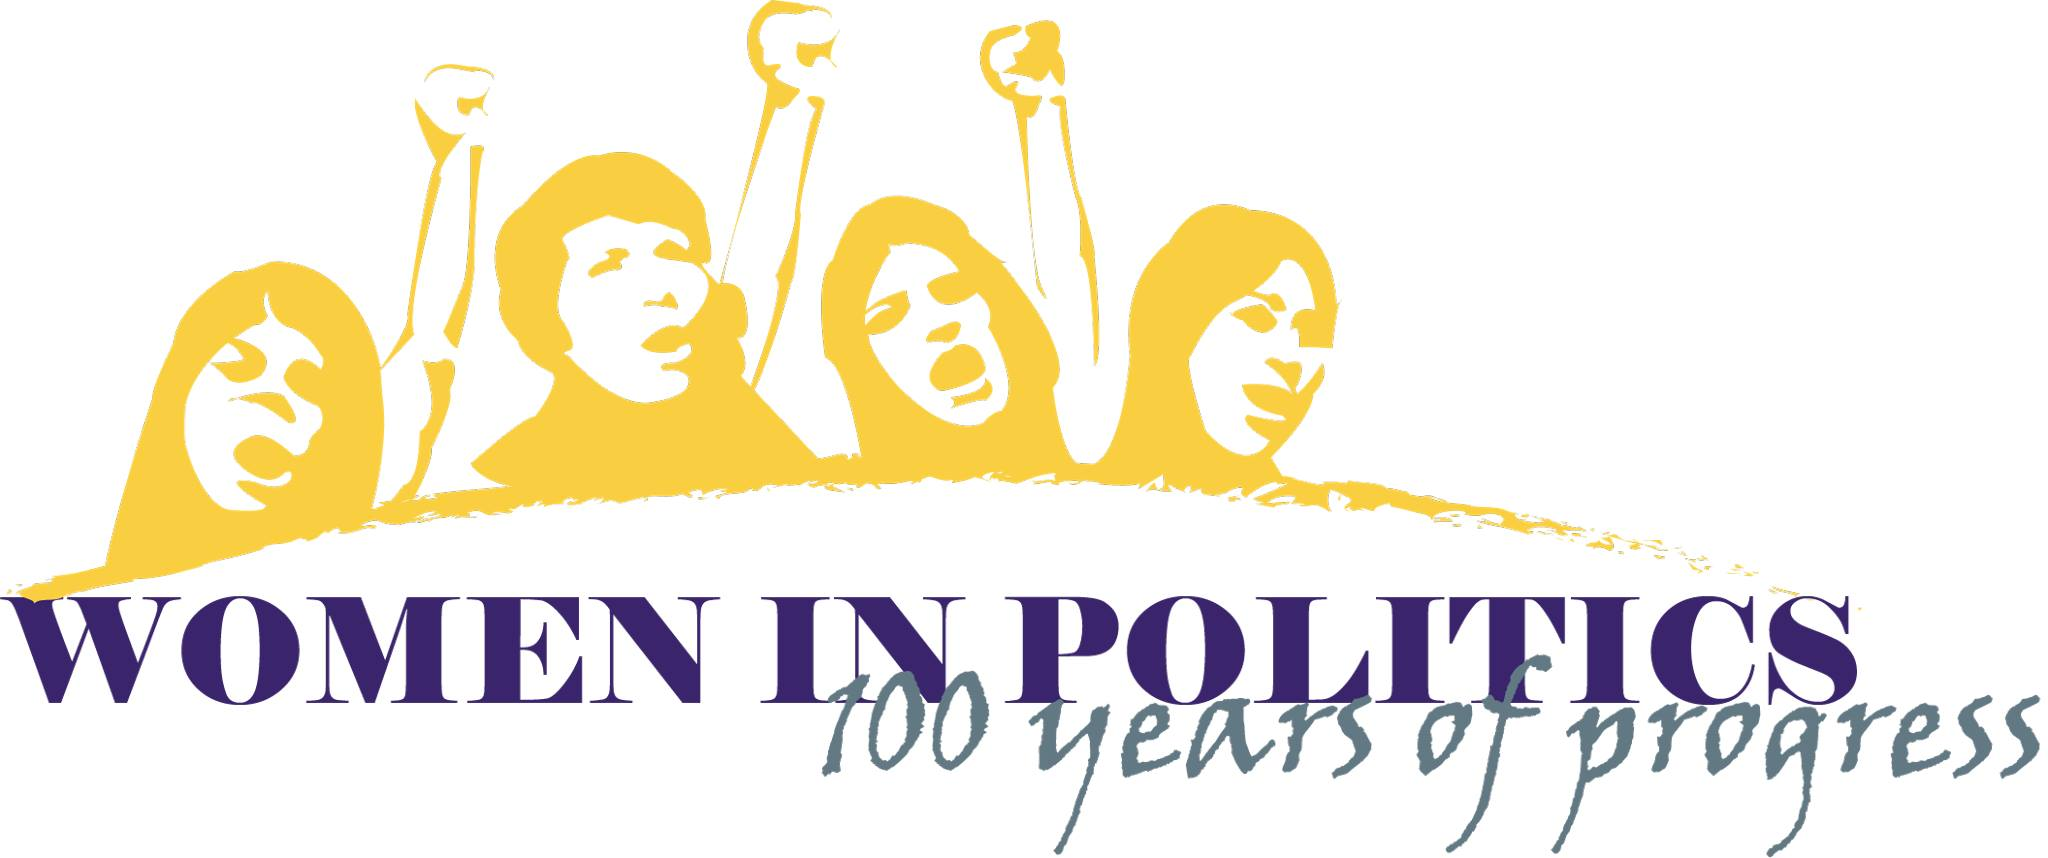 Women in Politics: 100 Years of Progress